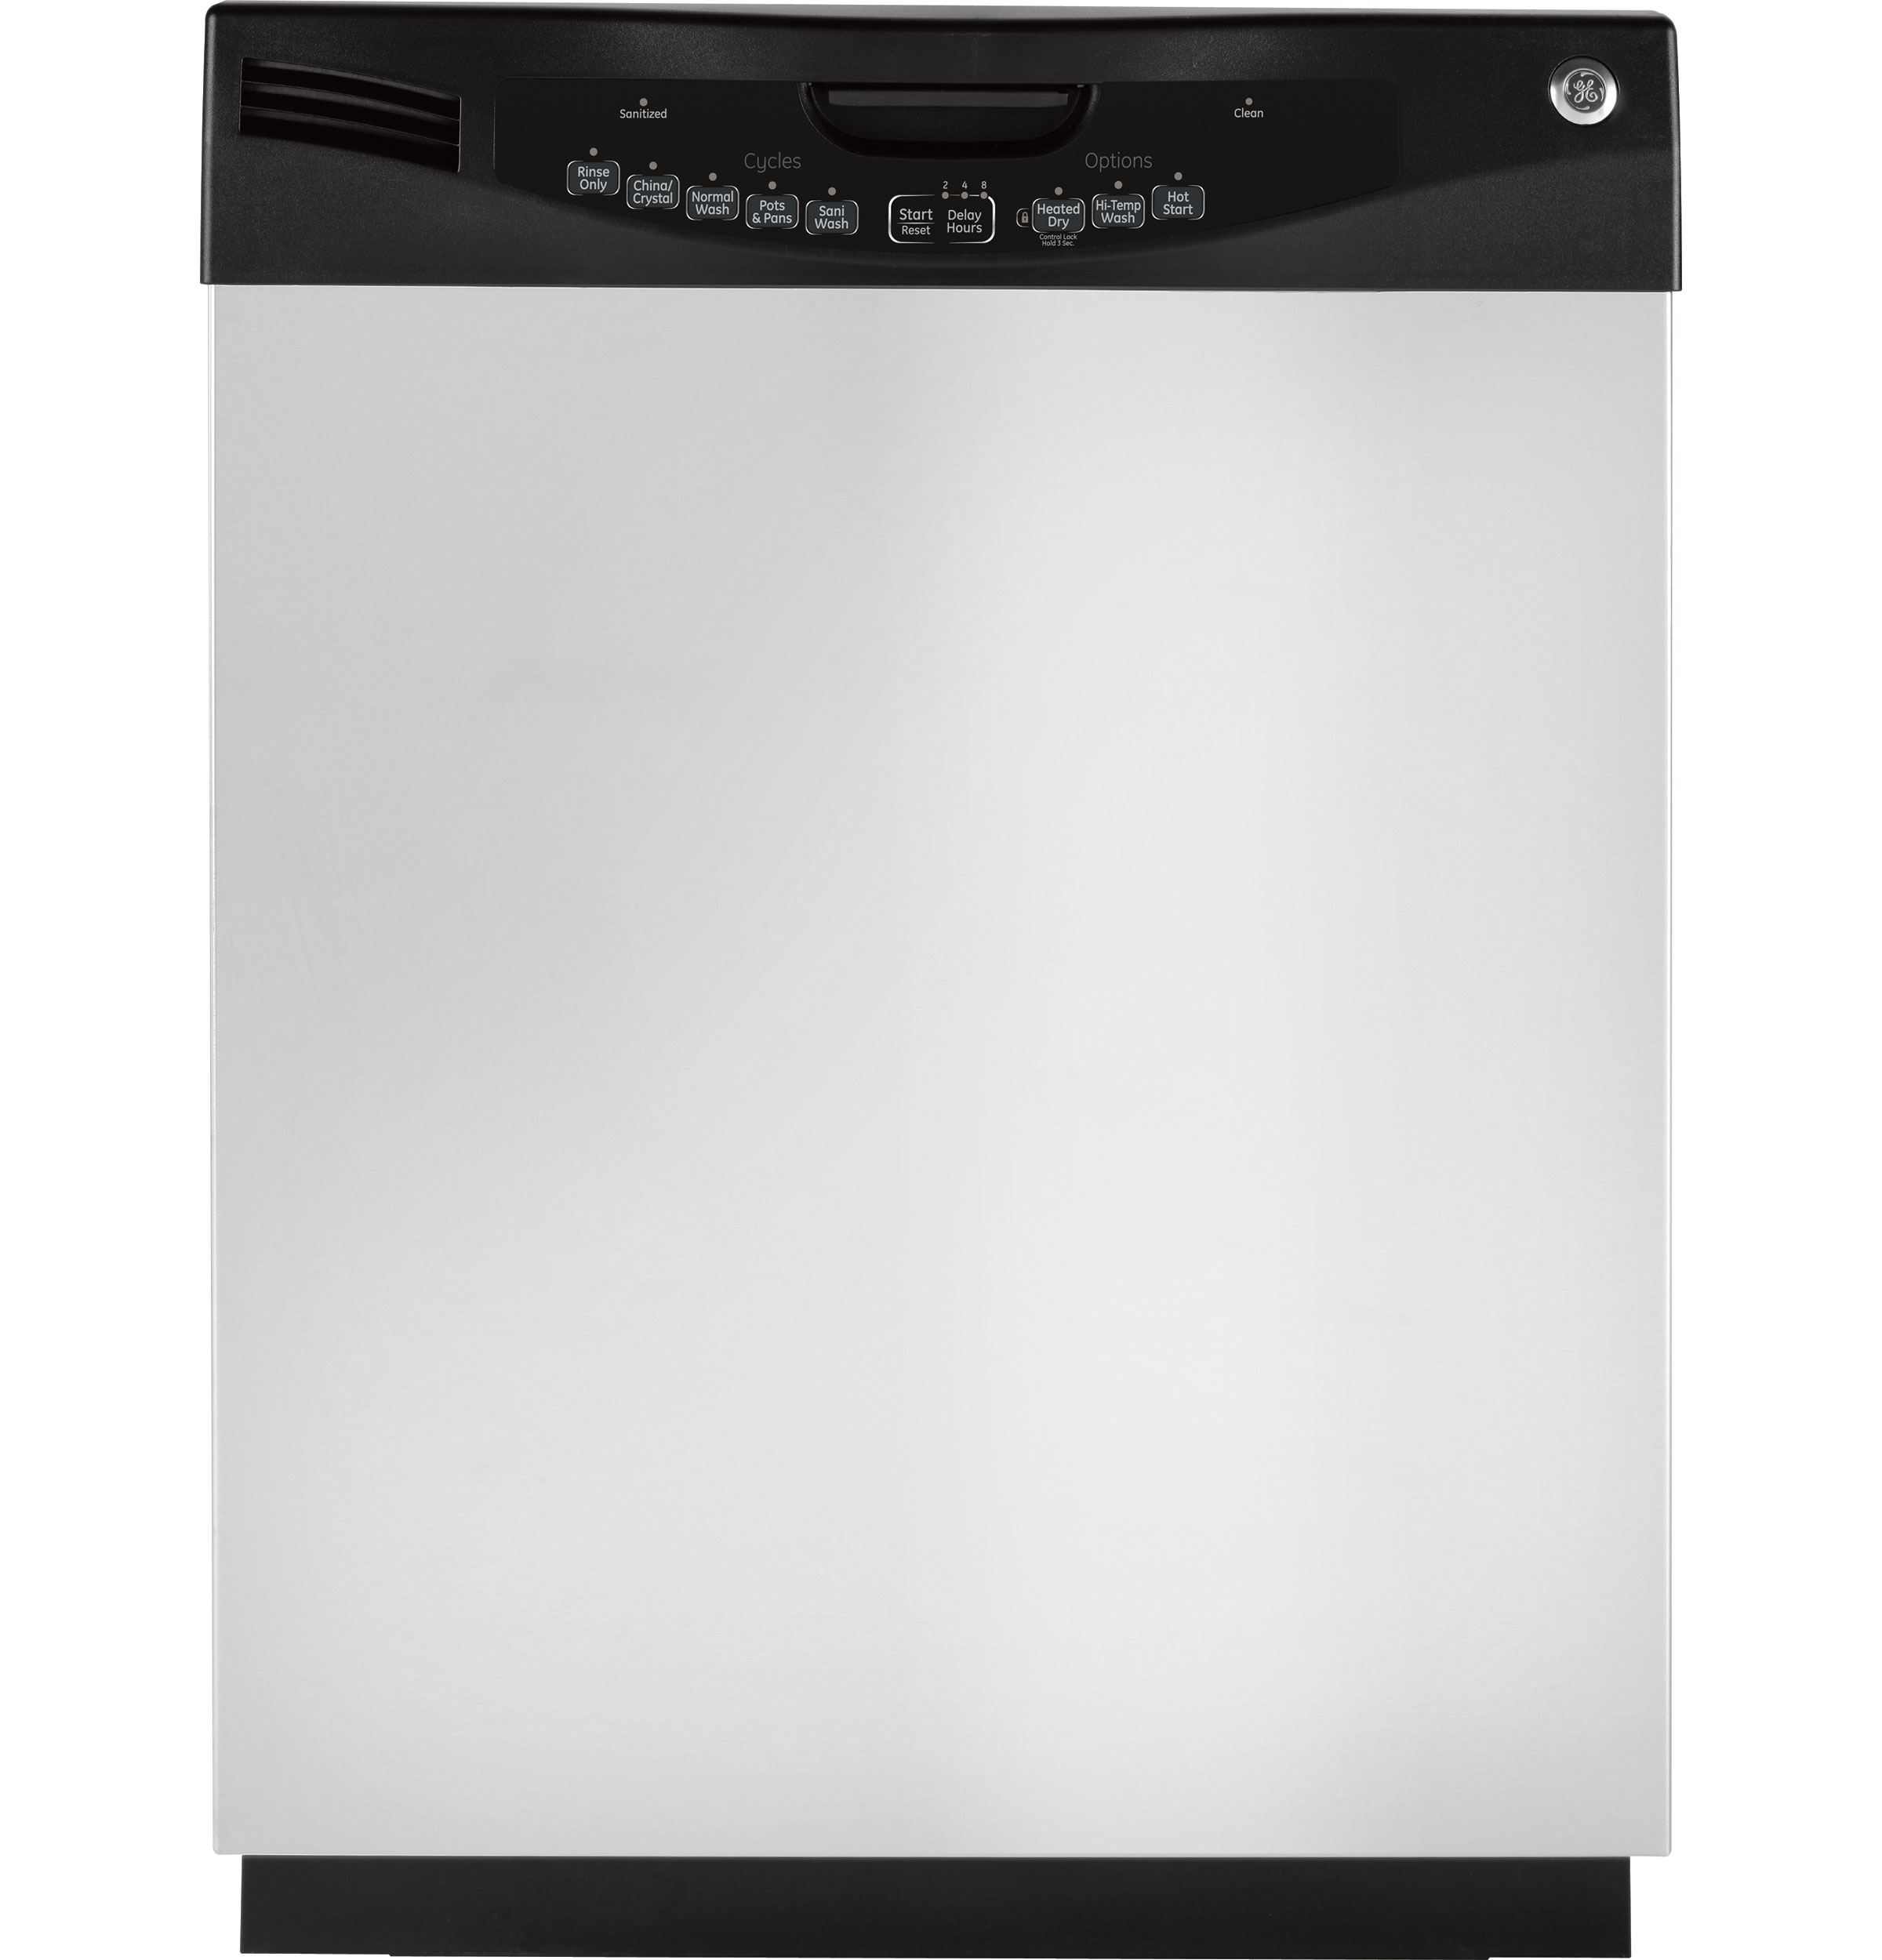 content ge doesn have rack but review lower spacious countertop reviewed t is lot dishwashers reviews dishwasher of a com the s portable